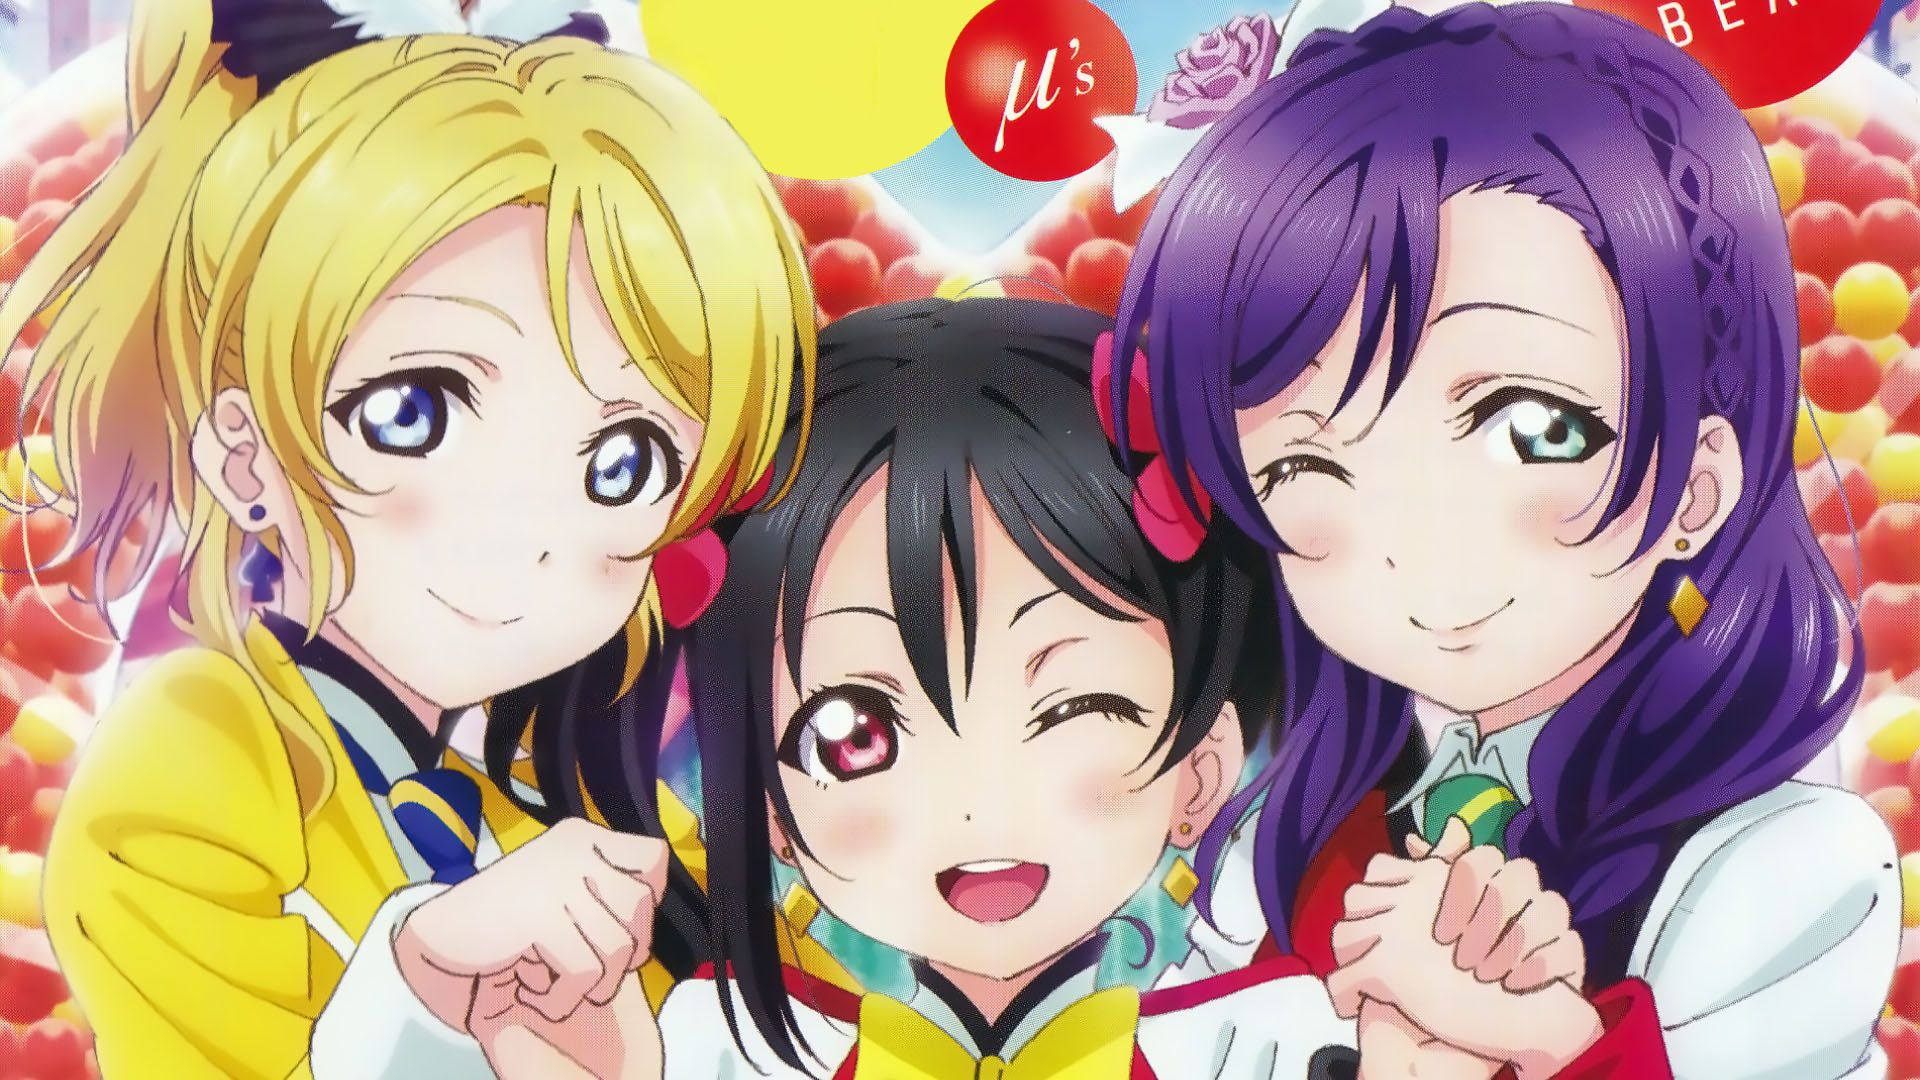 22992_lovelive_PC